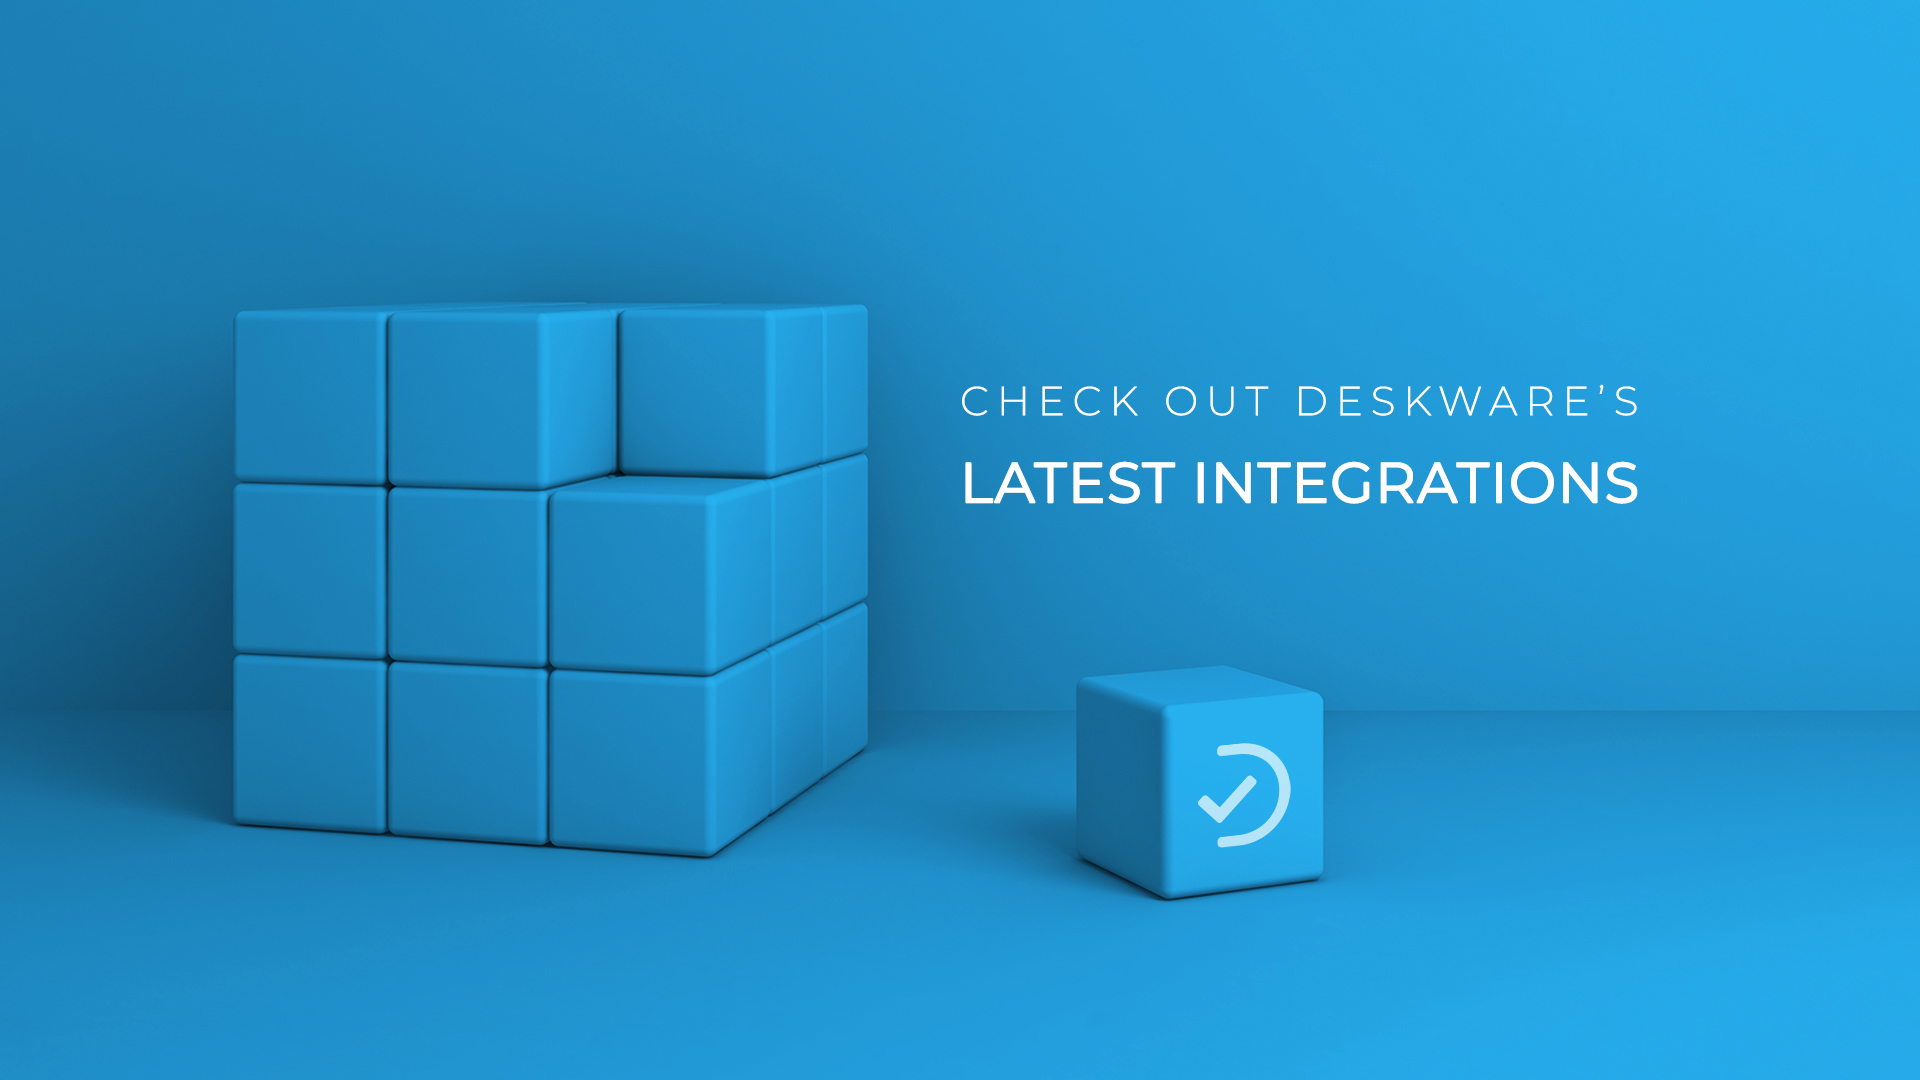 Check Out Deskware's Latest Integrations